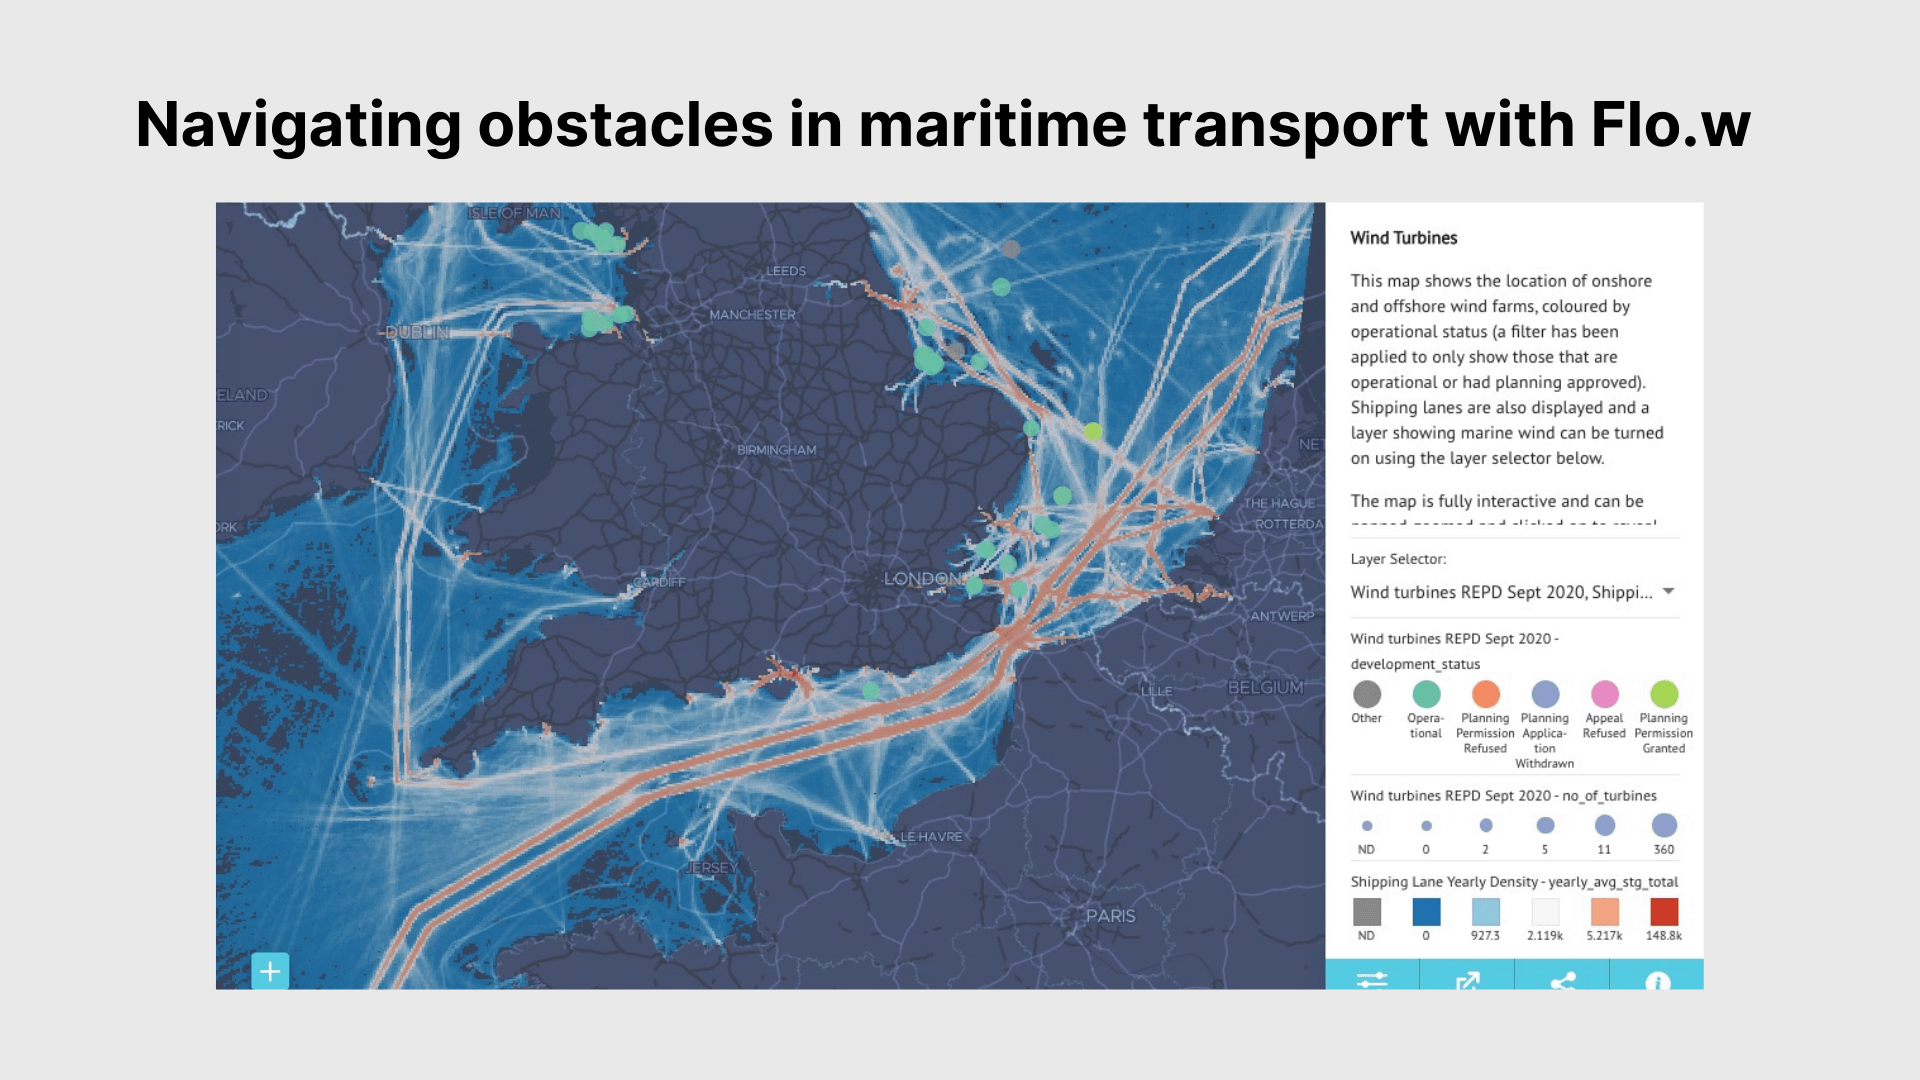 Navigating obstacles in maritime transport with Flo.w